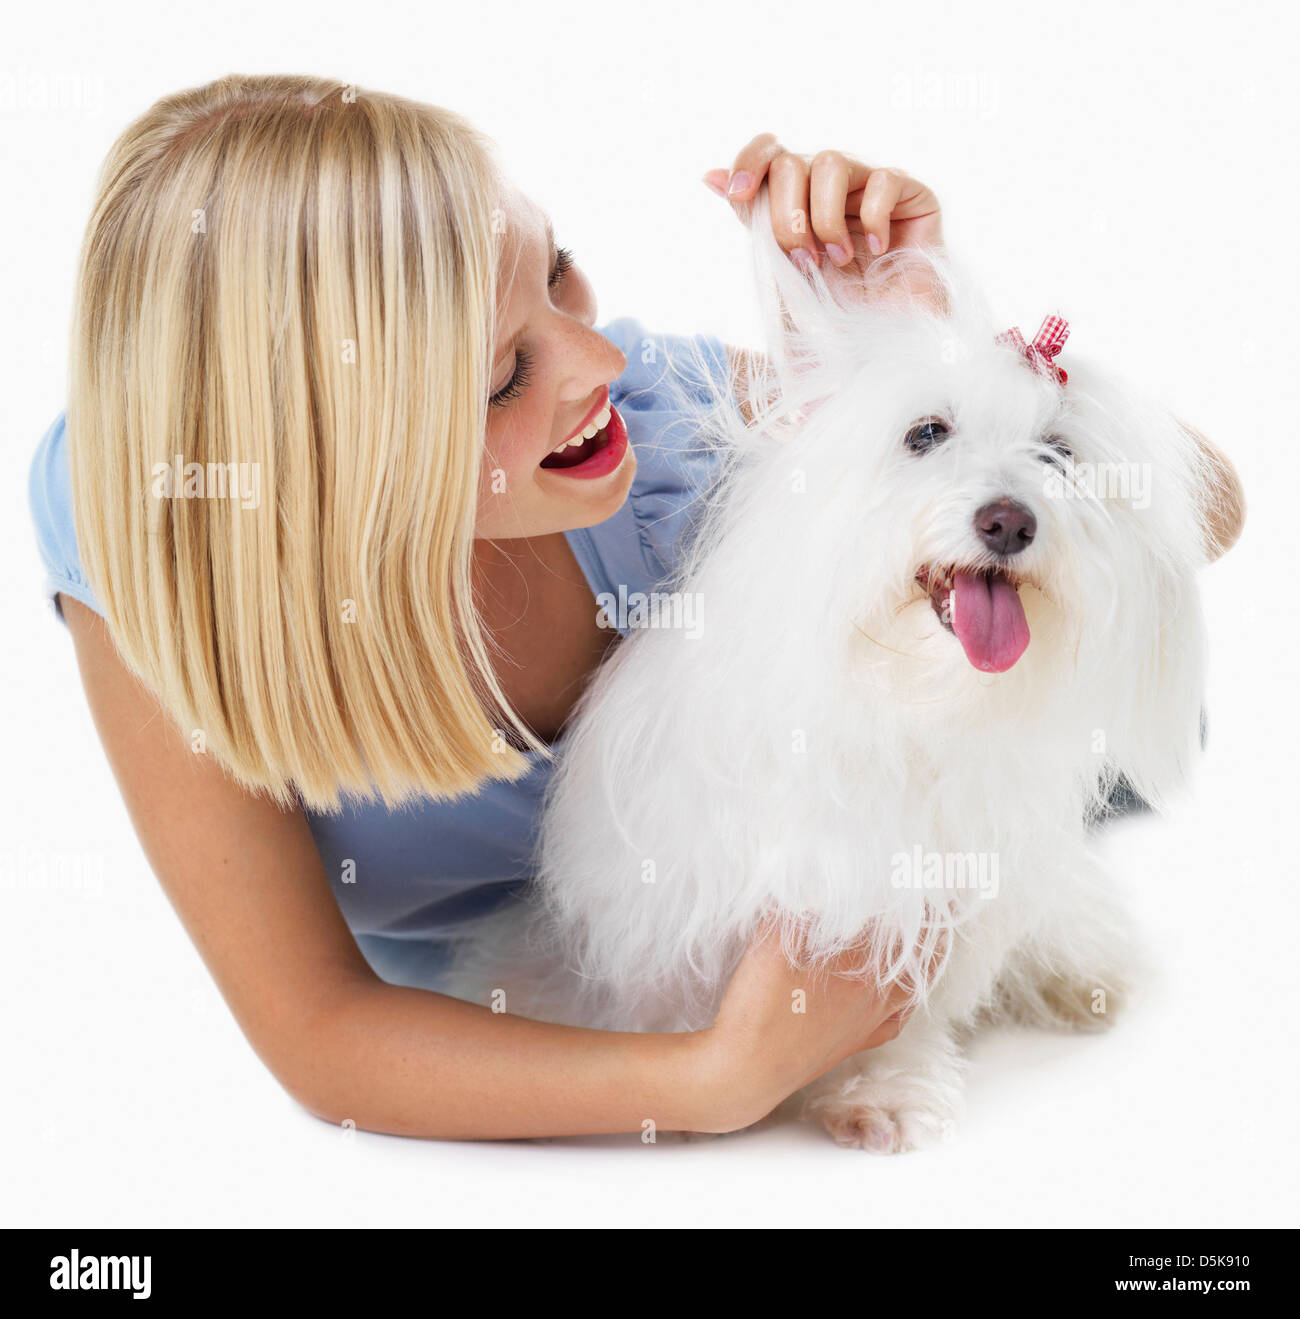 Studio Shot, Portrait of young woman stroking her dog - Stock Image